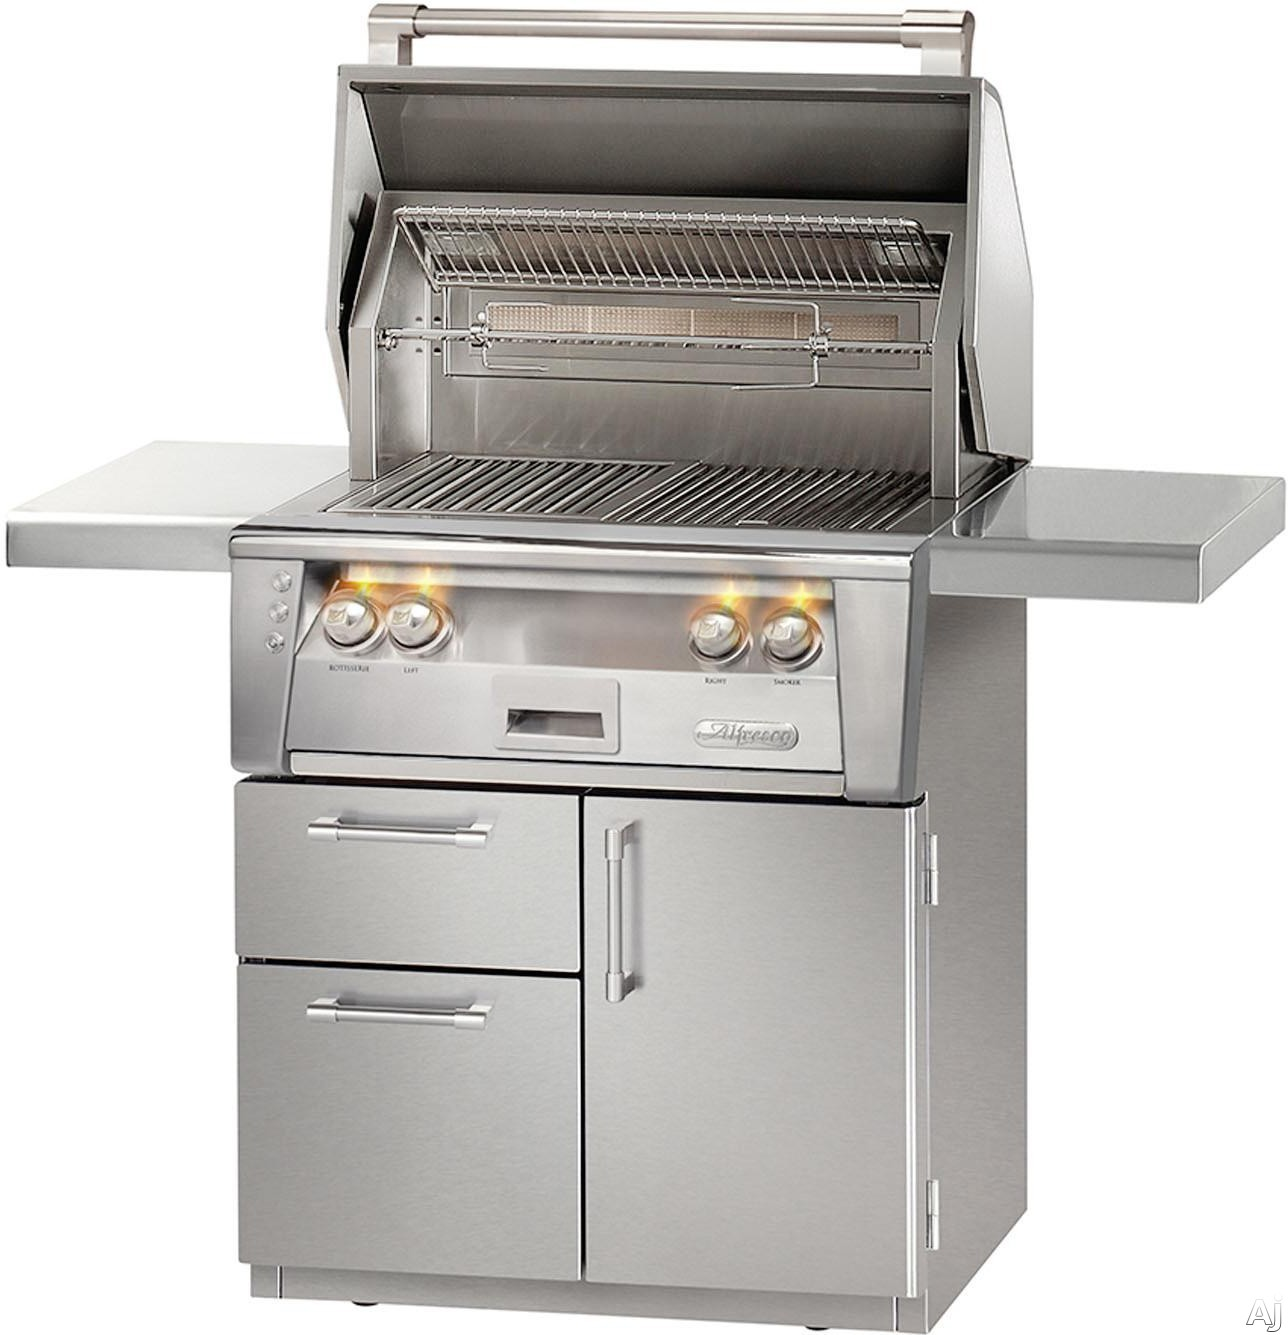 Alfresco ALXE30IRCDLP 30 Inch All Infrared Grill with 542 sq. in. Grilling Surface, Two 27,500 BTU Infrared Burners, Integrated Rotisserie, Smoker and Herb Infuser System, 3-Position Warming Rack, Hal